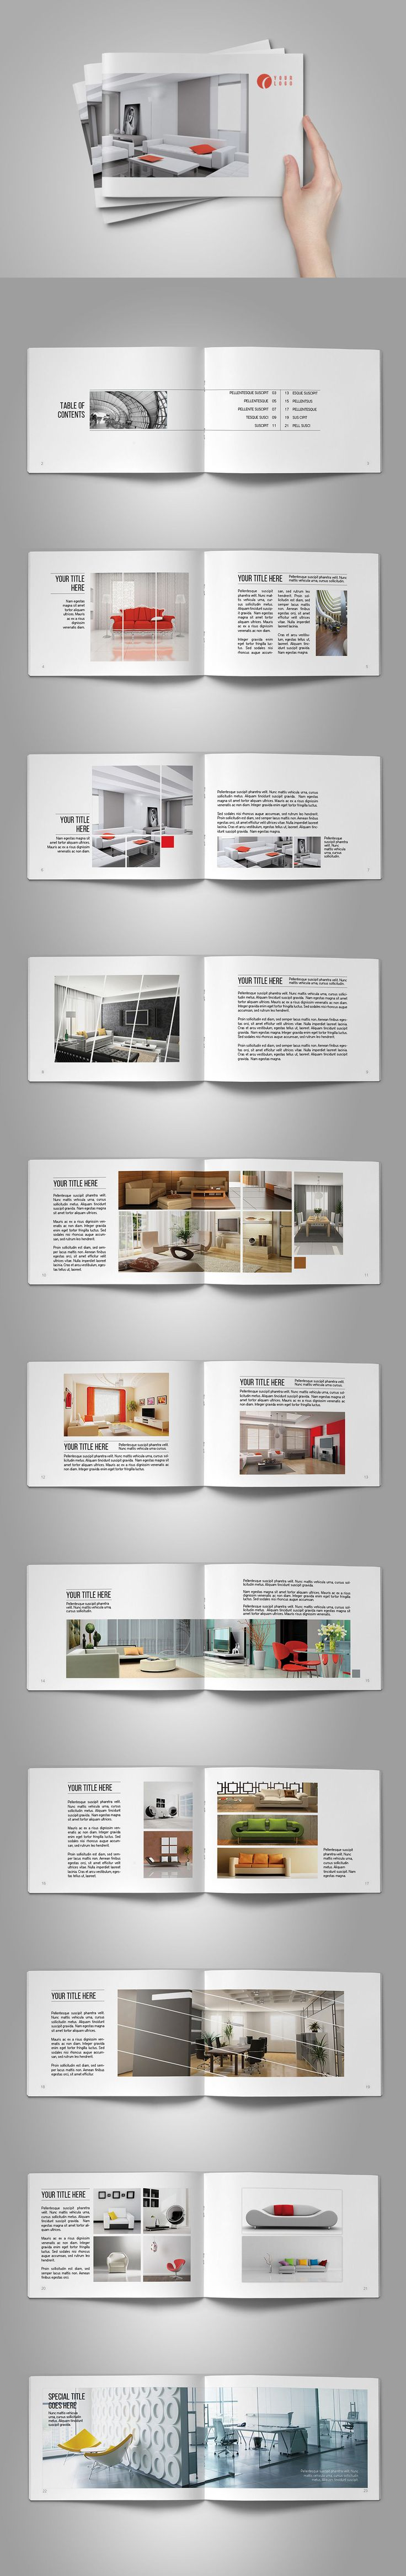 Interior Design Brochure Template InDesign INDD - 24 Pages, A5 Landscape